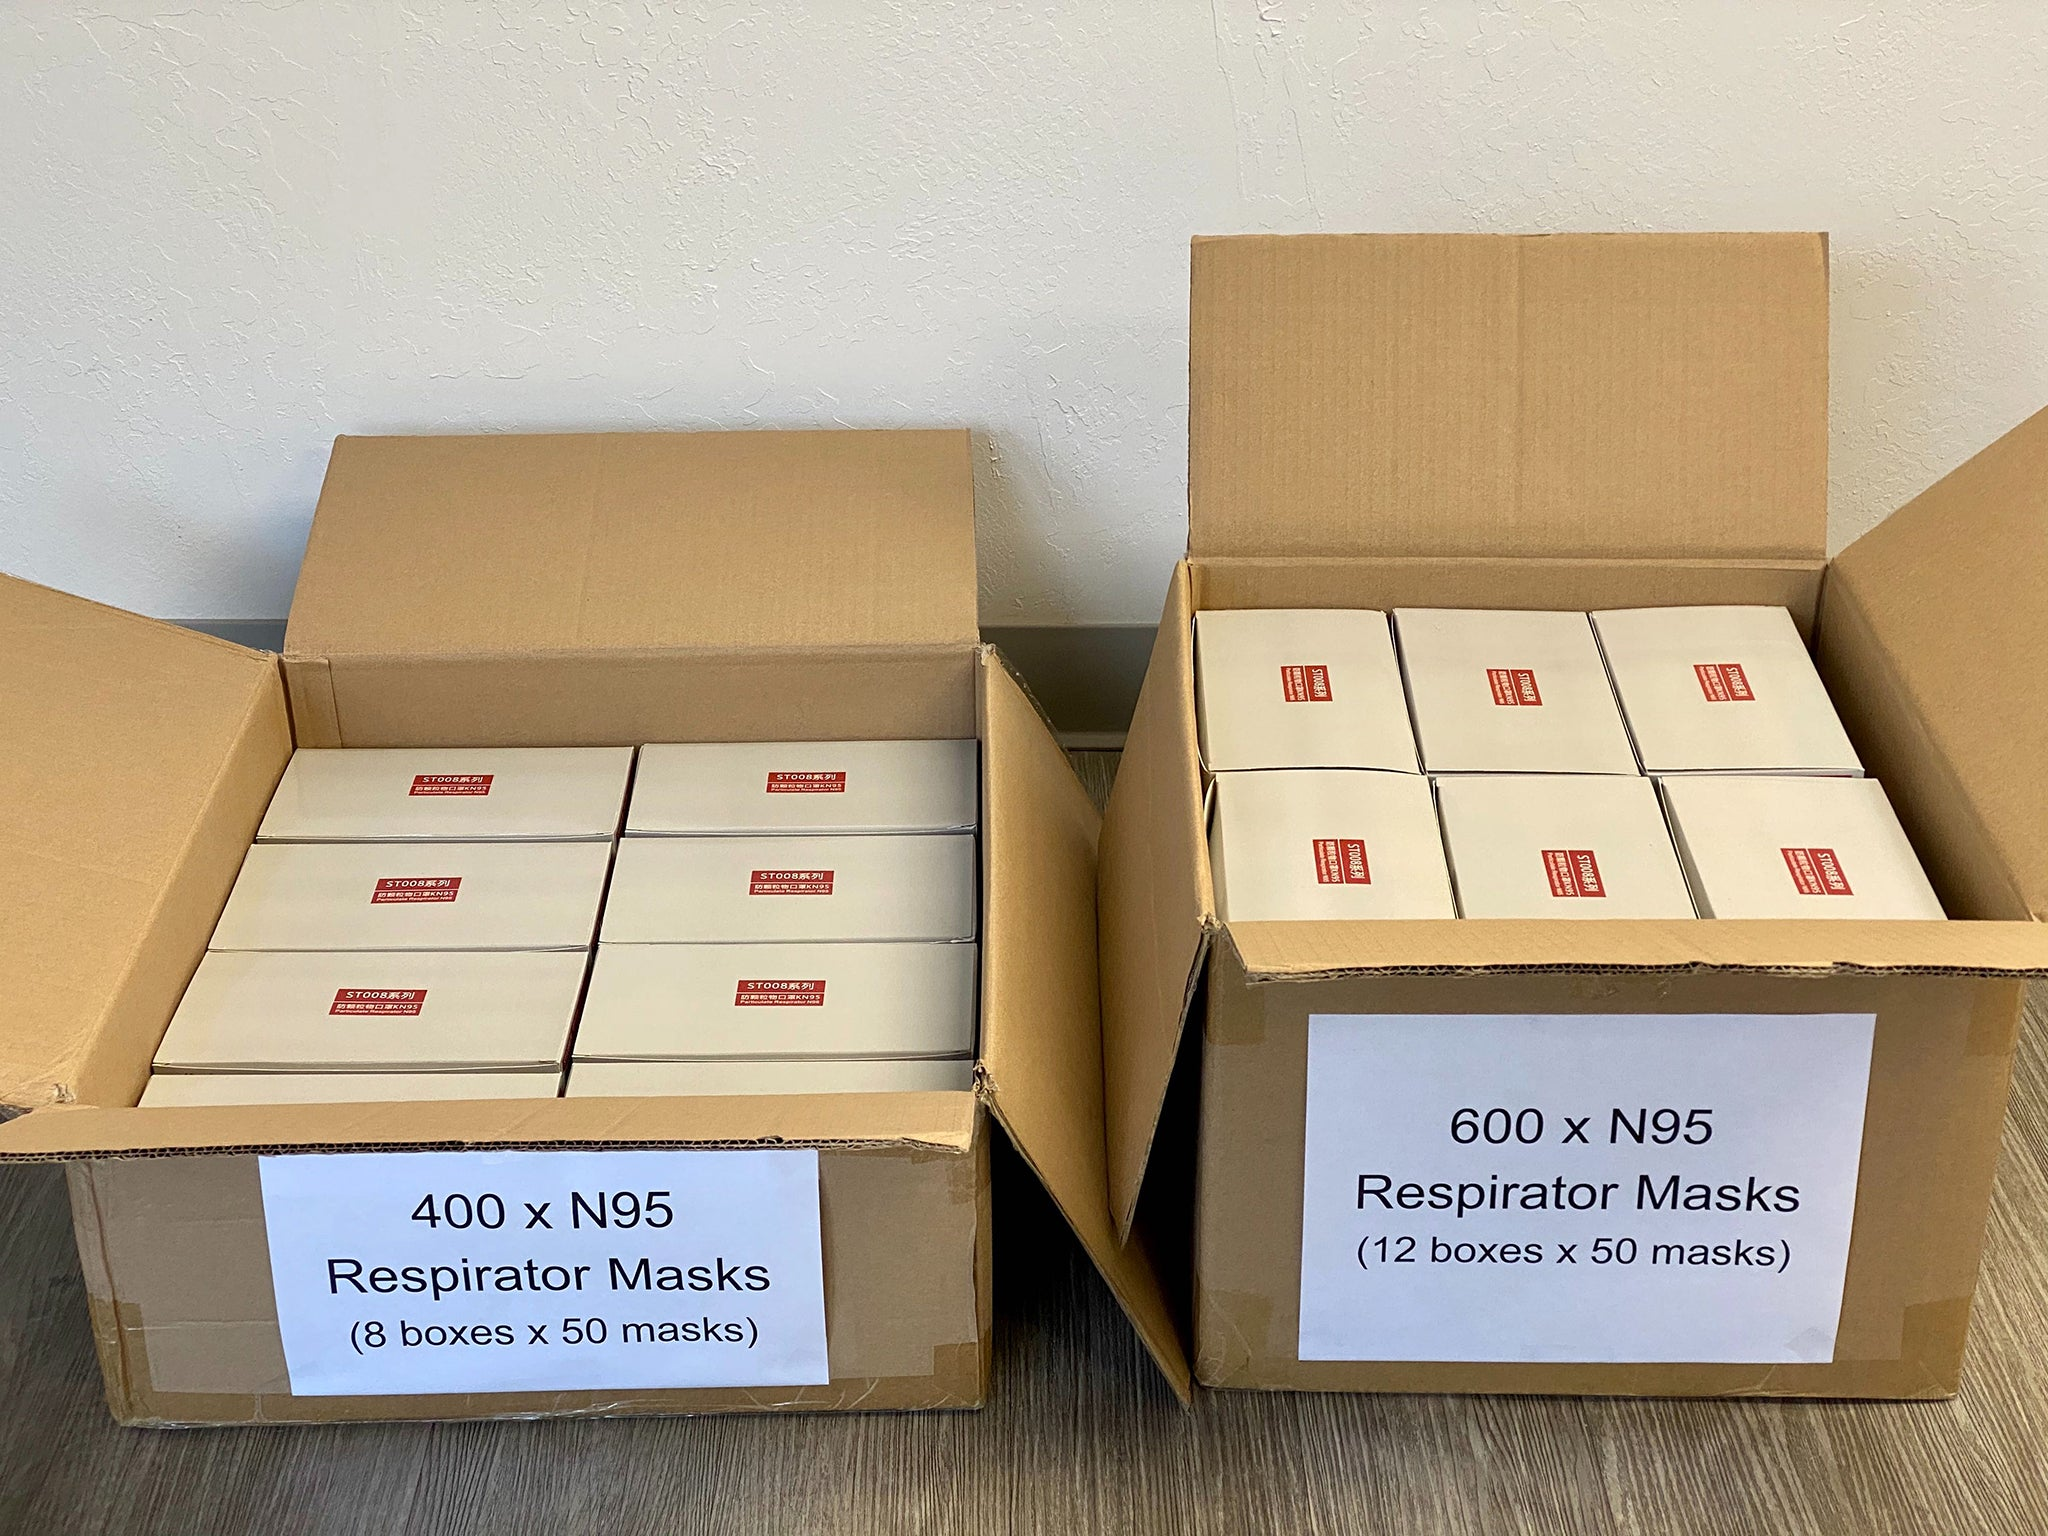 1,000 N95 masks donated